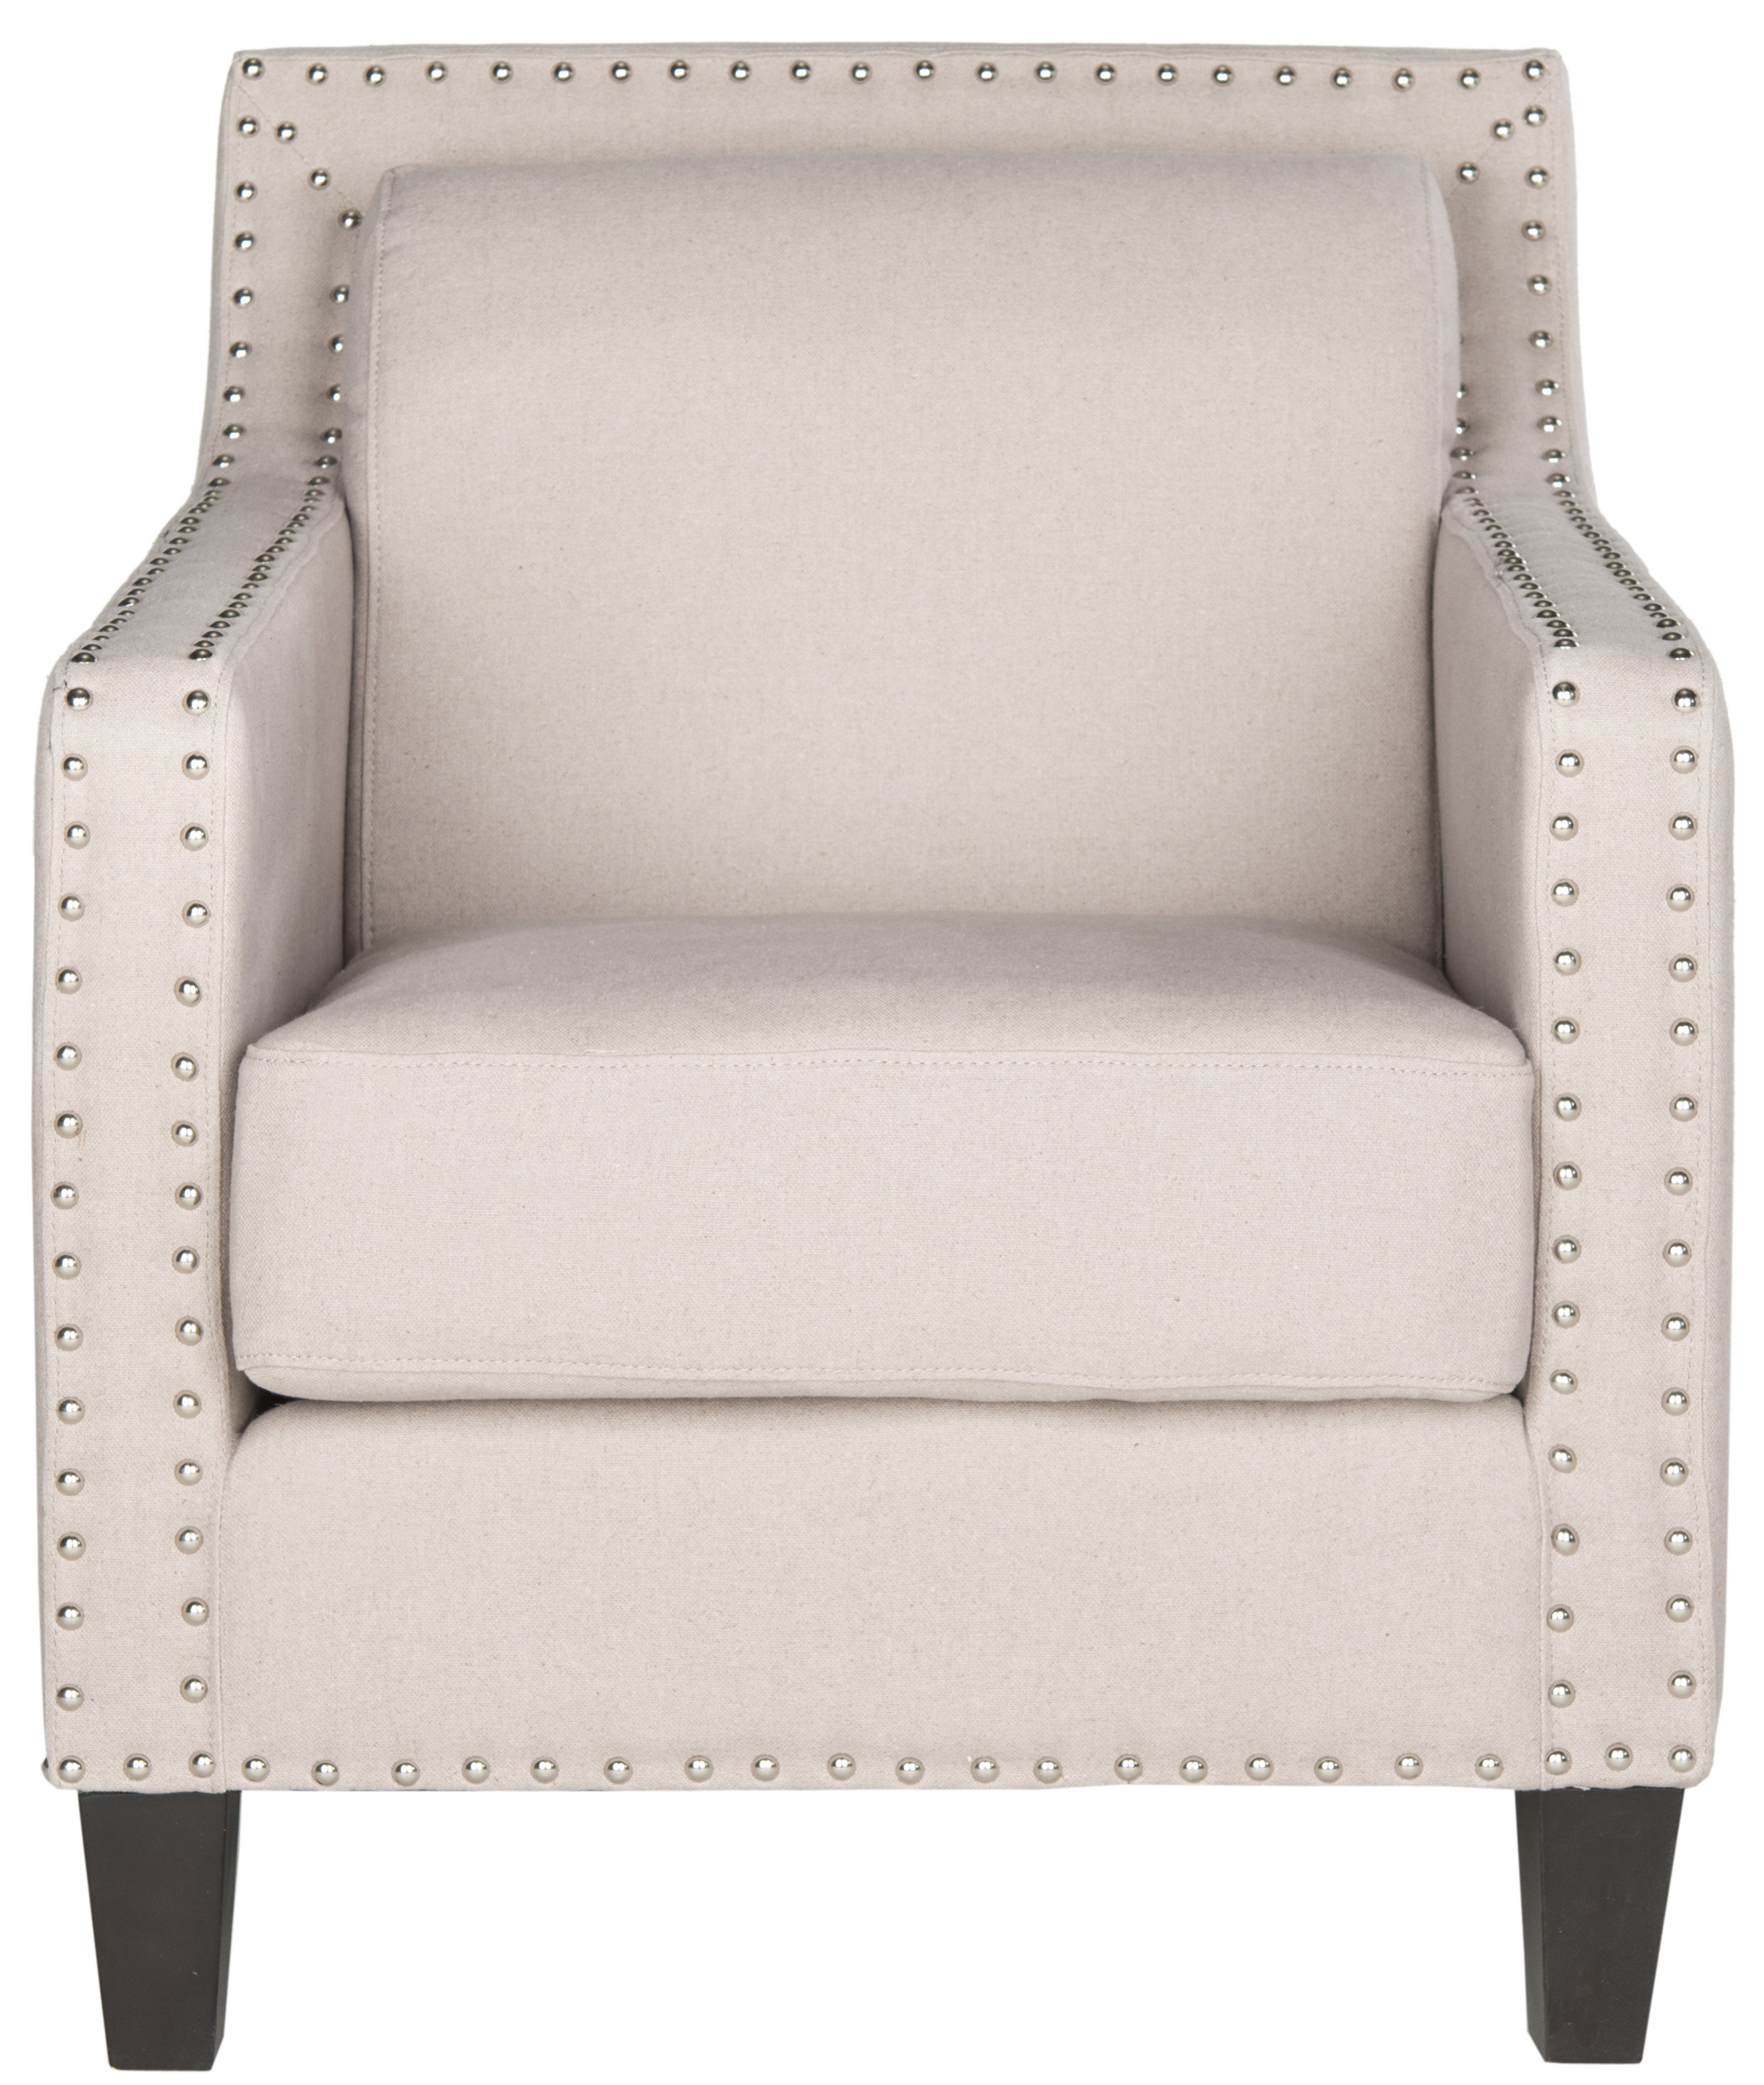 Safavieh Lucy Armchair & Reviews | Wayfair Pertaining To Lucy Grey Sofa Chairs (View 7 of 25)